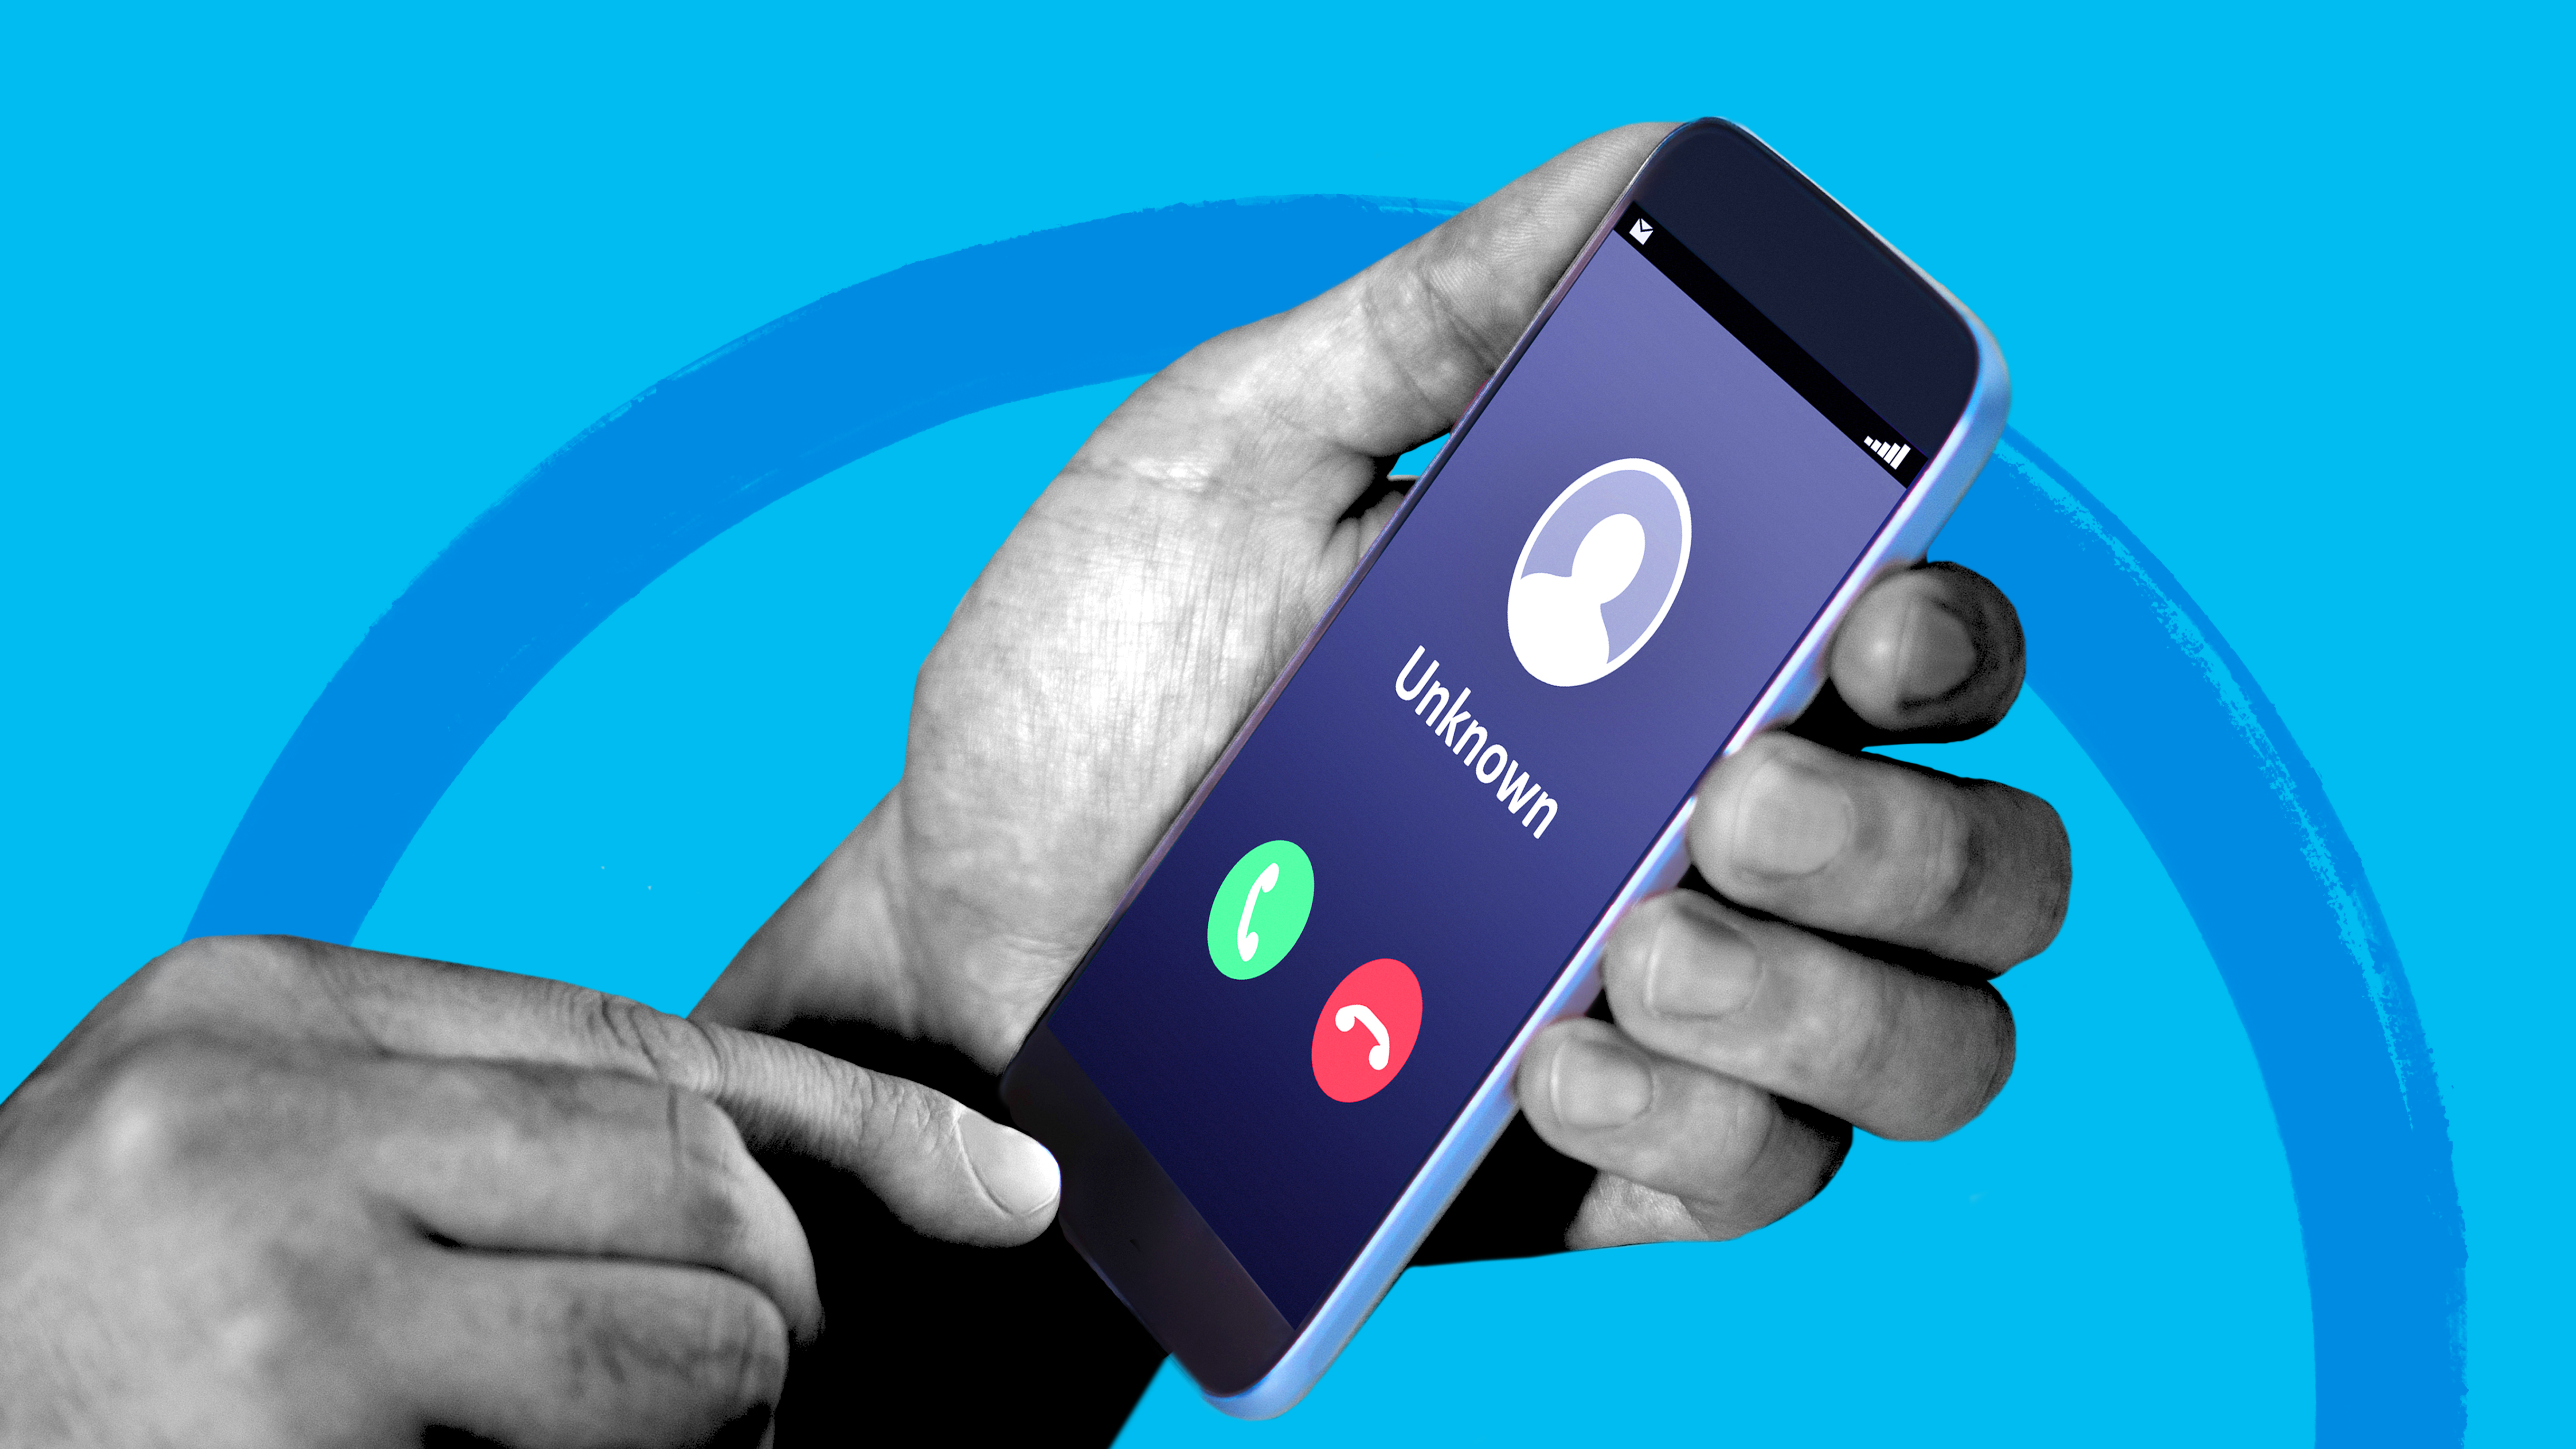 Justice Department moves to thwart global robocall scheme